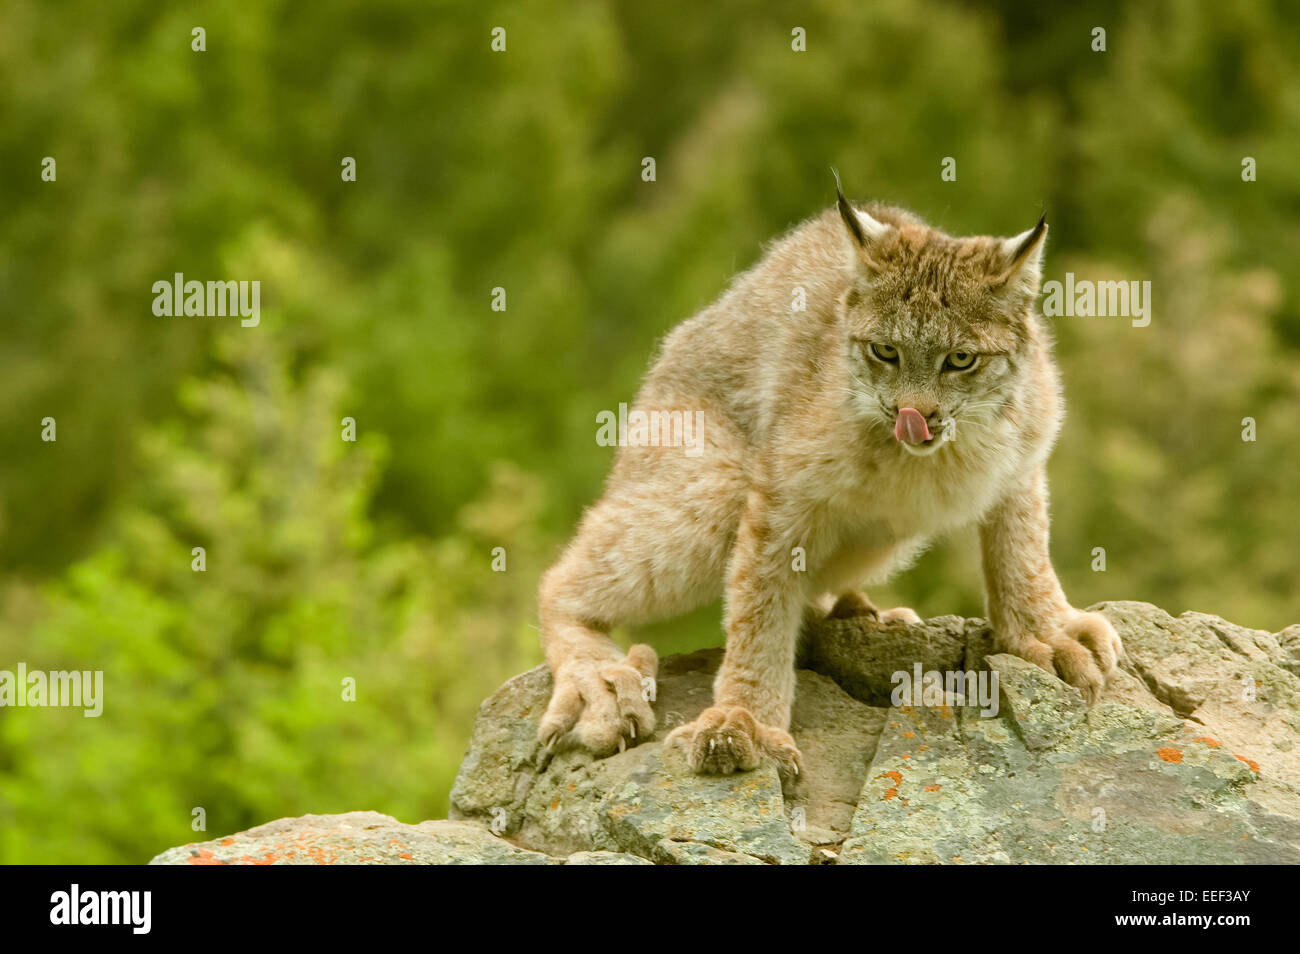 Sub-adult Canada Lynx with tongue out, on rocks in Bozeman, Montana, USA - Stock Image